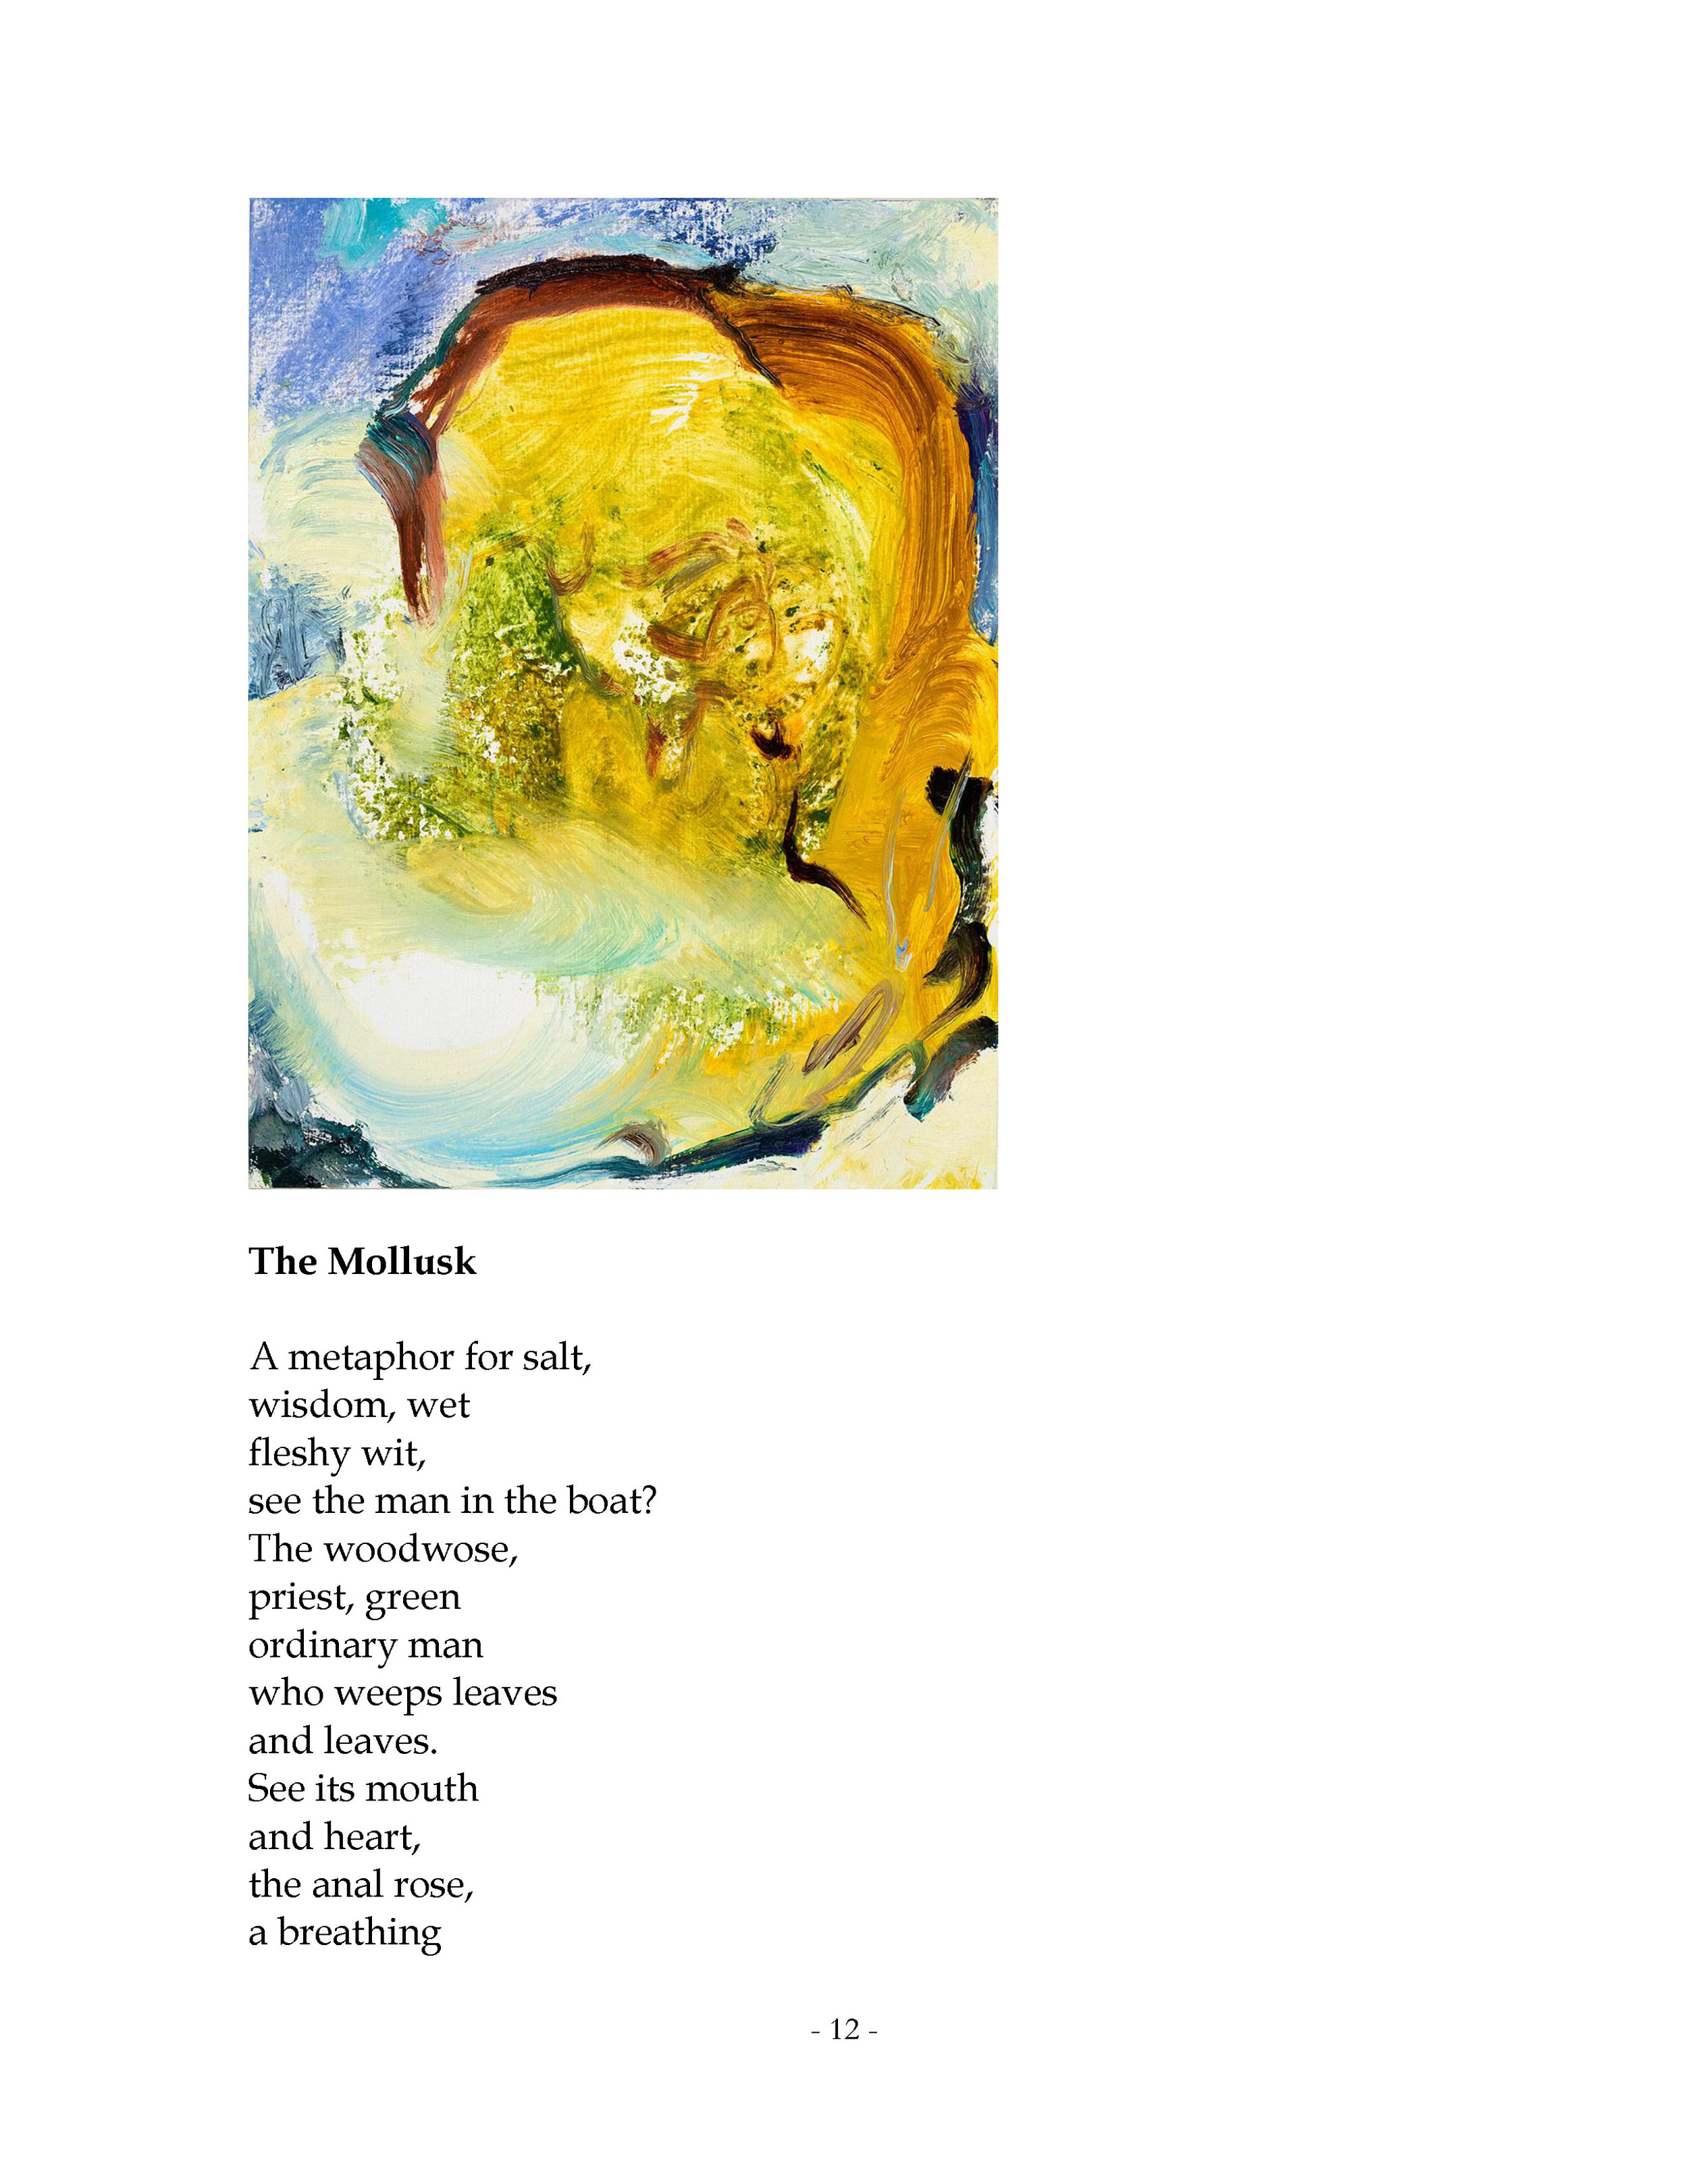 The Mollusk  by Billie Chernicoff Pages 12-13 Published by  Metambesen  Annandale-on-Hudson, 2019